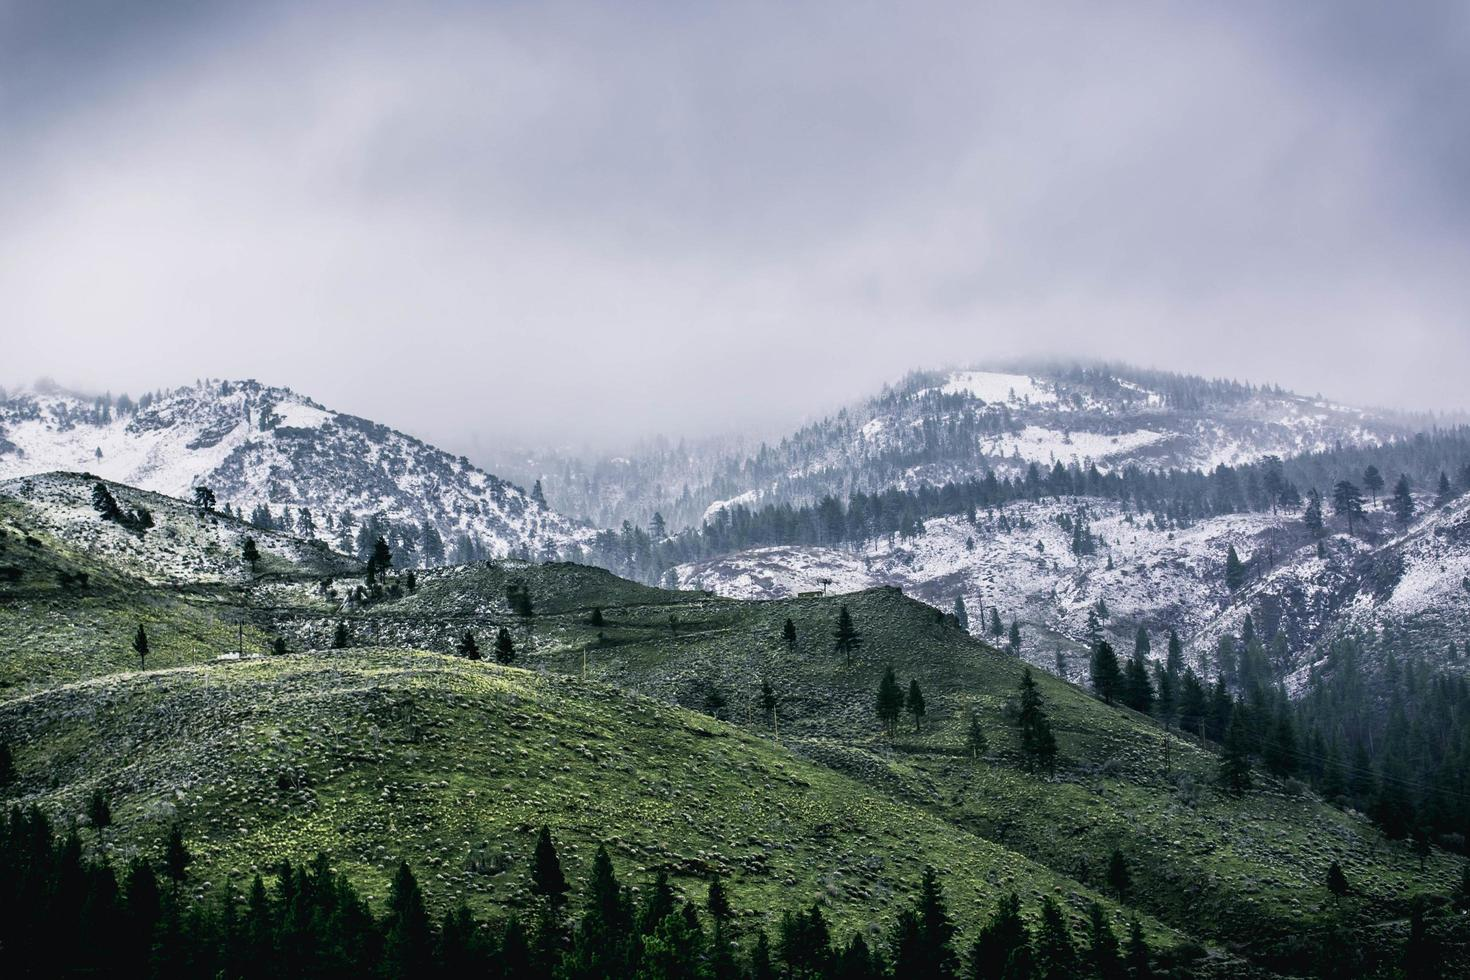 Green mountains covered in snow photo